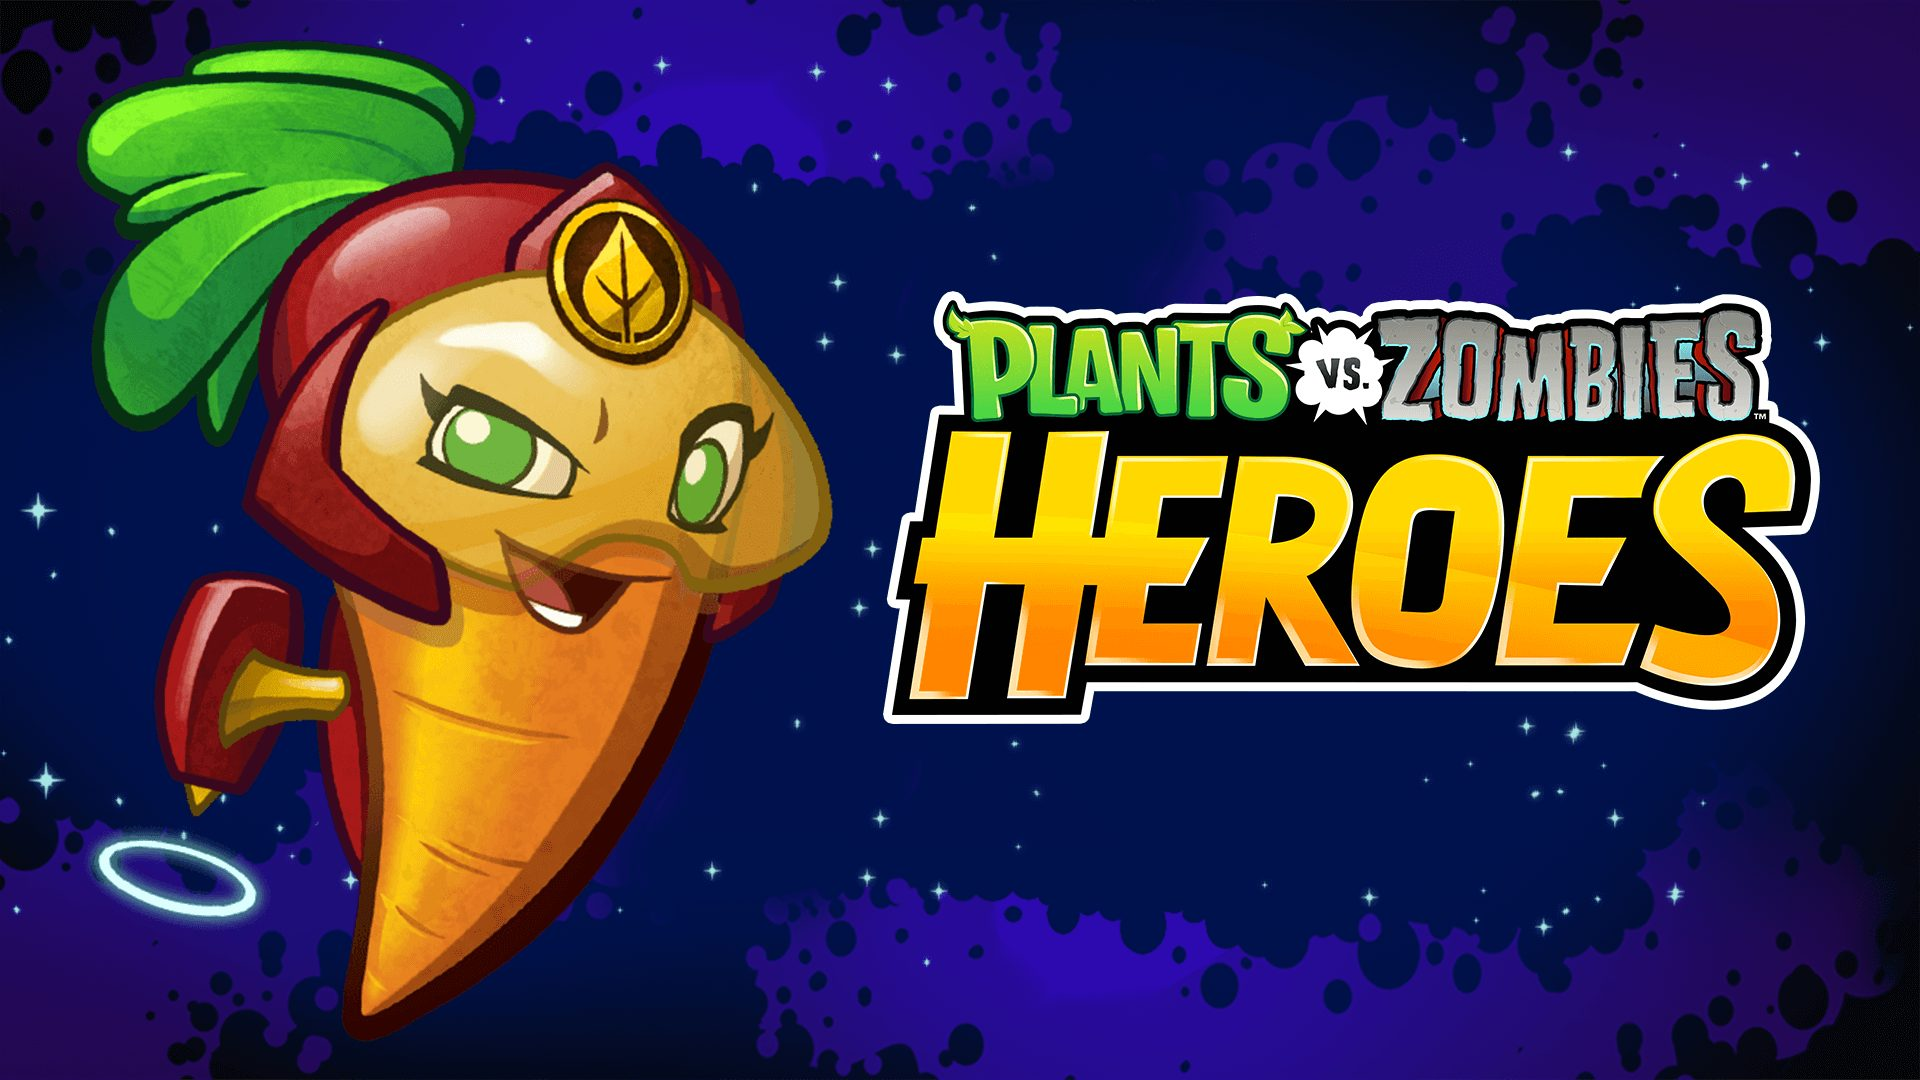 Two new heroes land in plants vs zombies heroes as leader of the plant etary guard beta carrotina is ready to root our zombies where ever they crop up she can conjure up a storm and her crew of carrots voltagebd Image collections